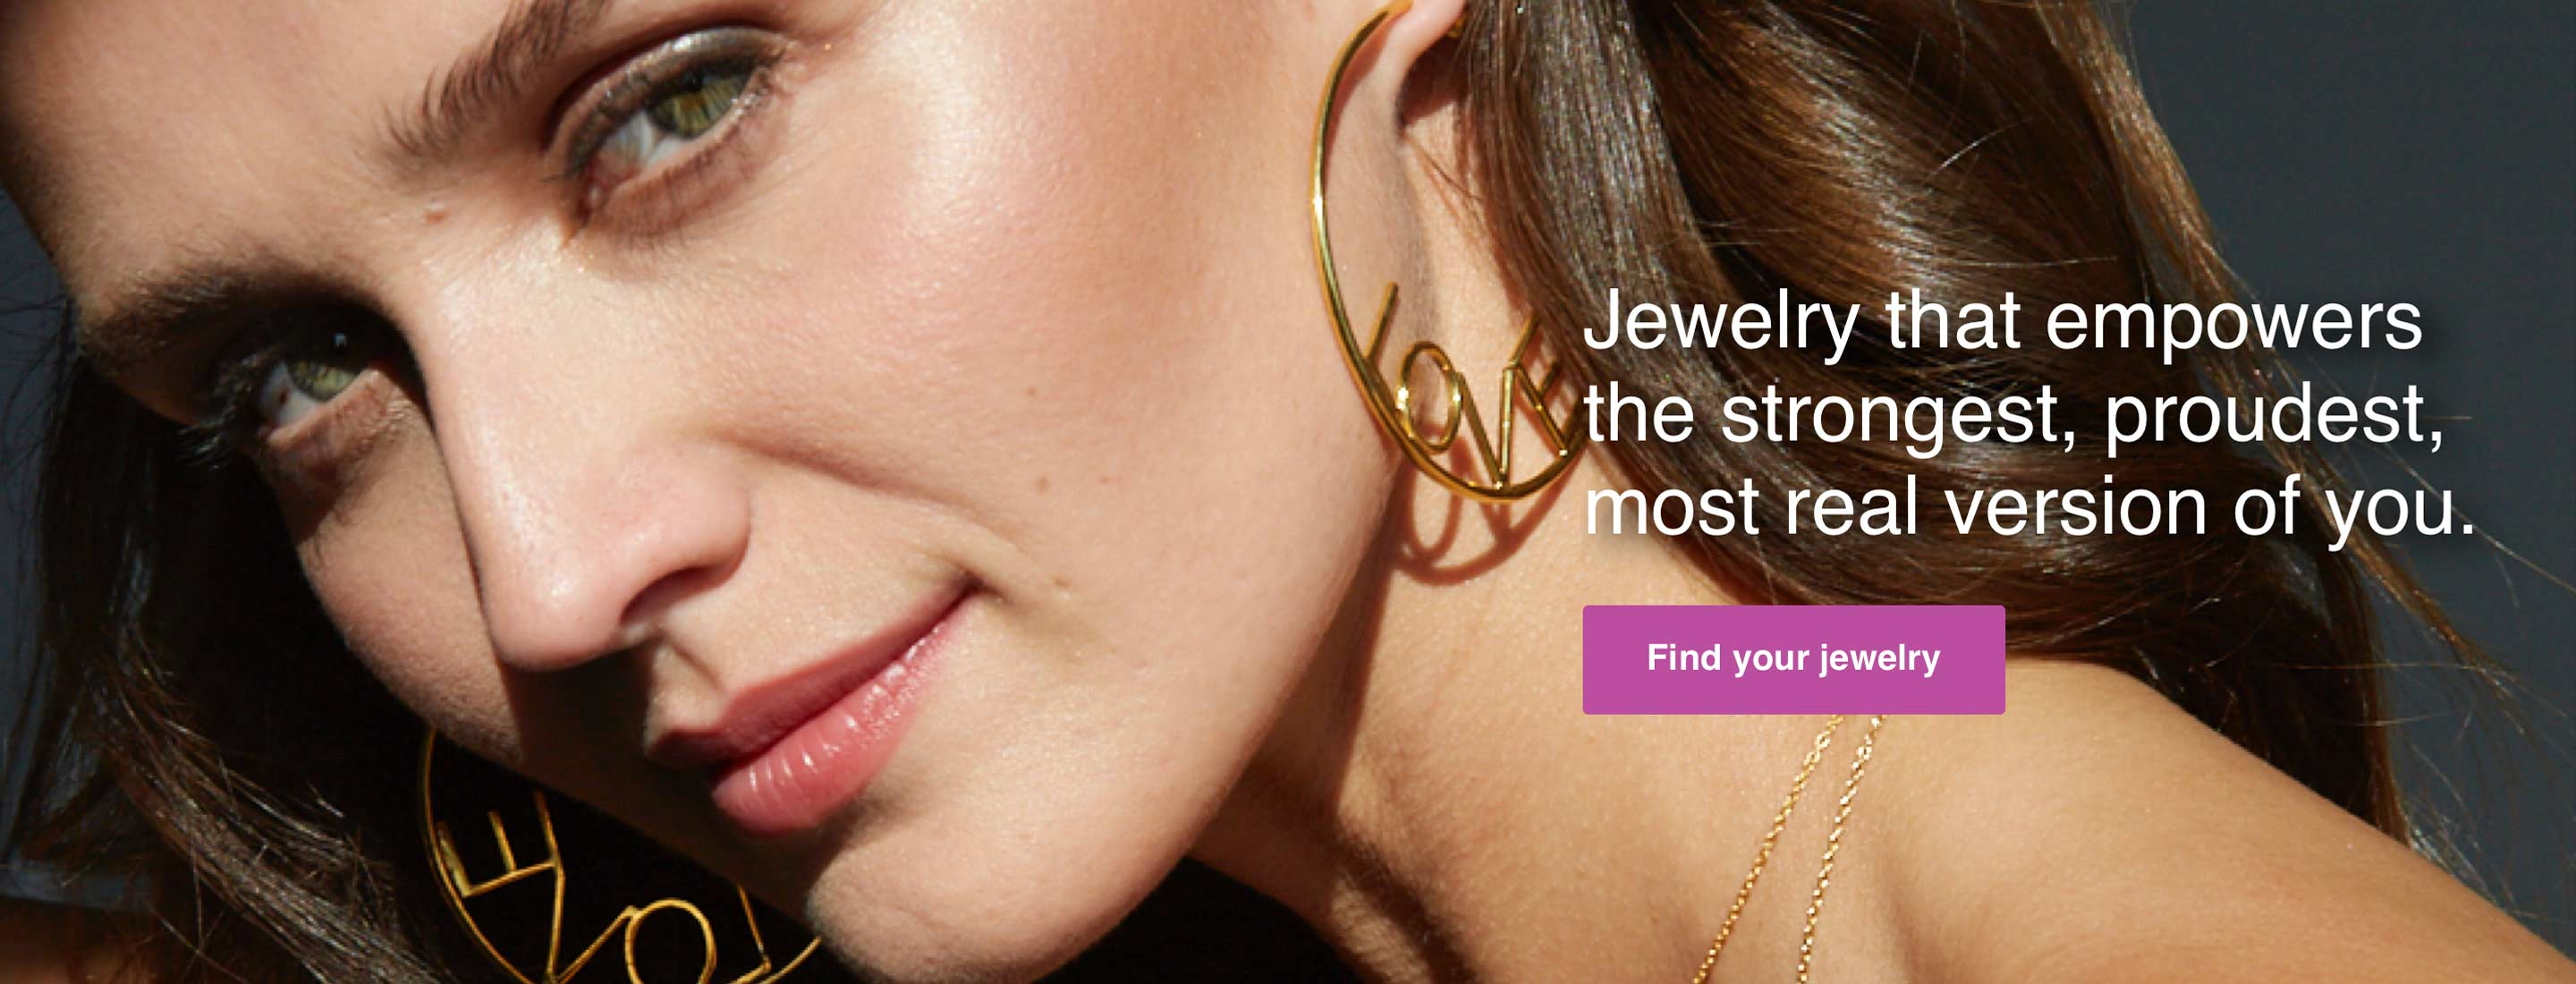 Modern Jewelry and Contemporary Jewelry